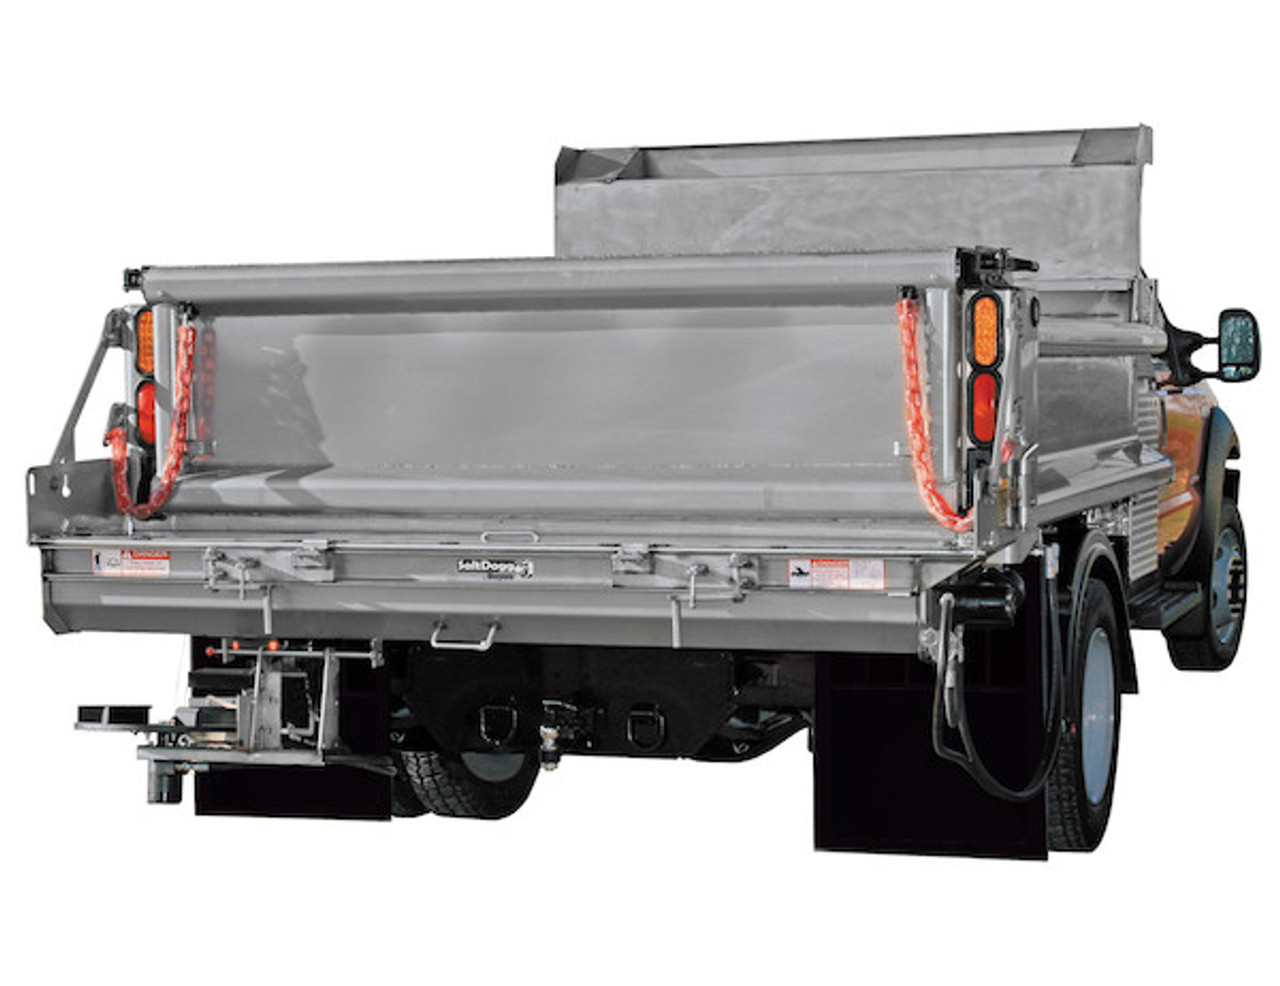 92420SSA BUYERS SALTDOGG HYDRAULIC UNDER TAILGATE STAINLESS STEEL SALT SPREADER